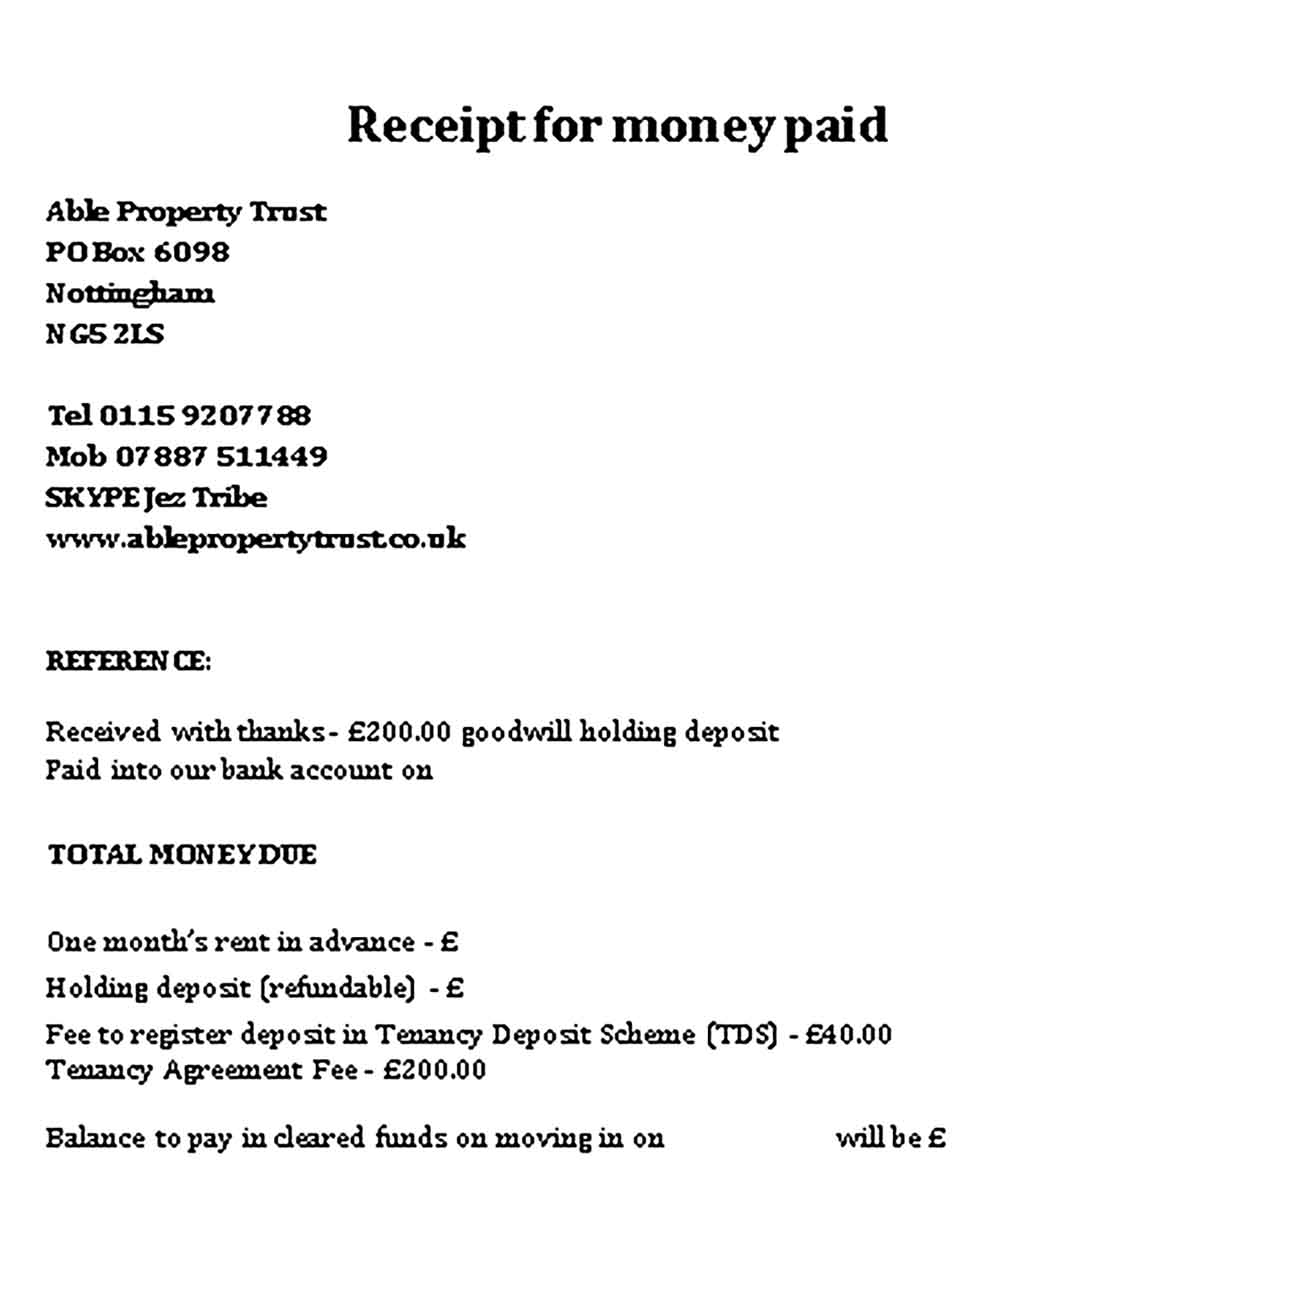 Sample Receipt for Money Paid Templates